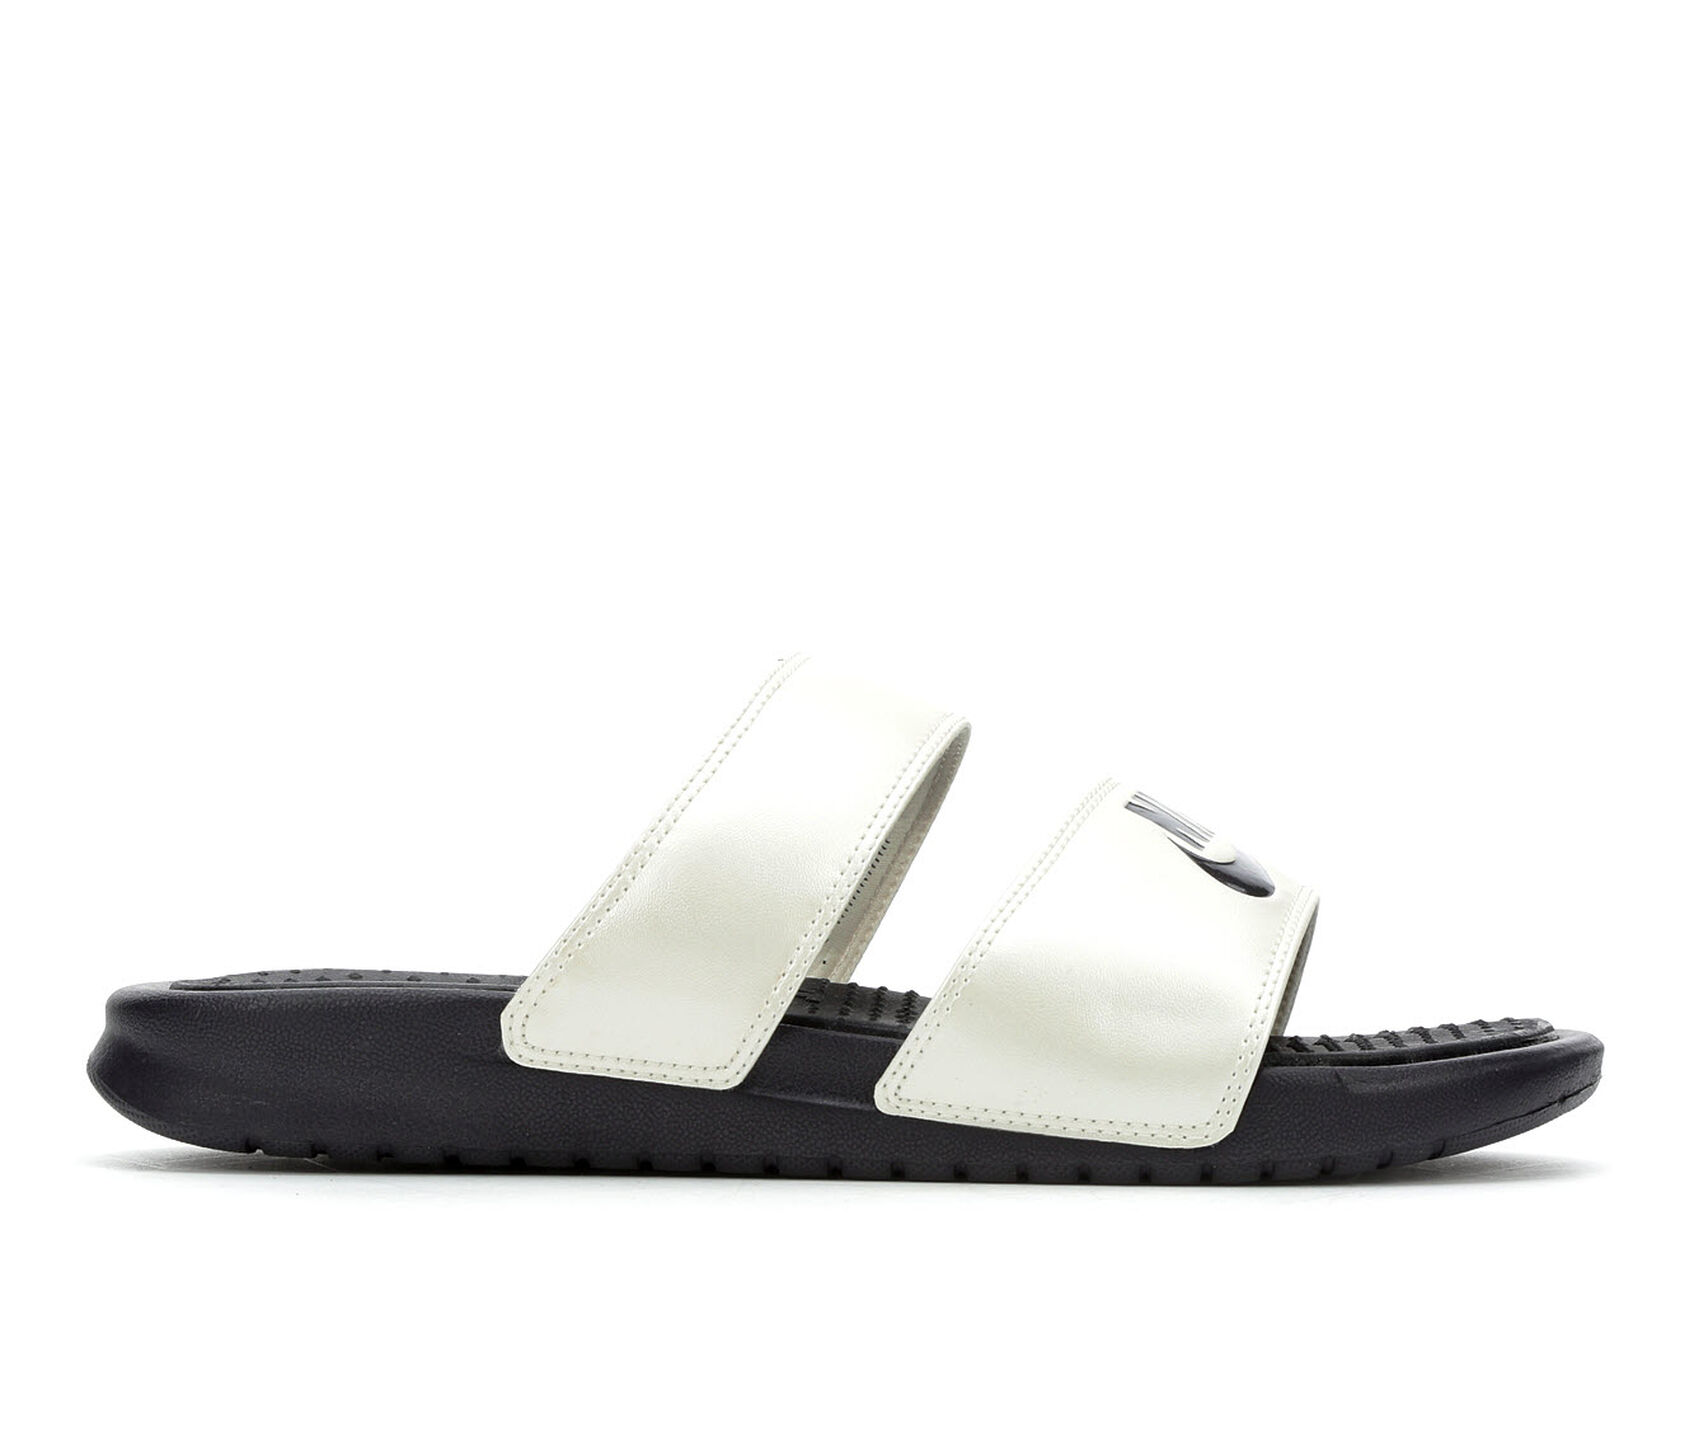 purchase cheap 8b60c 79003 ... Nike Benassi Duo Slide Sandals. Previous